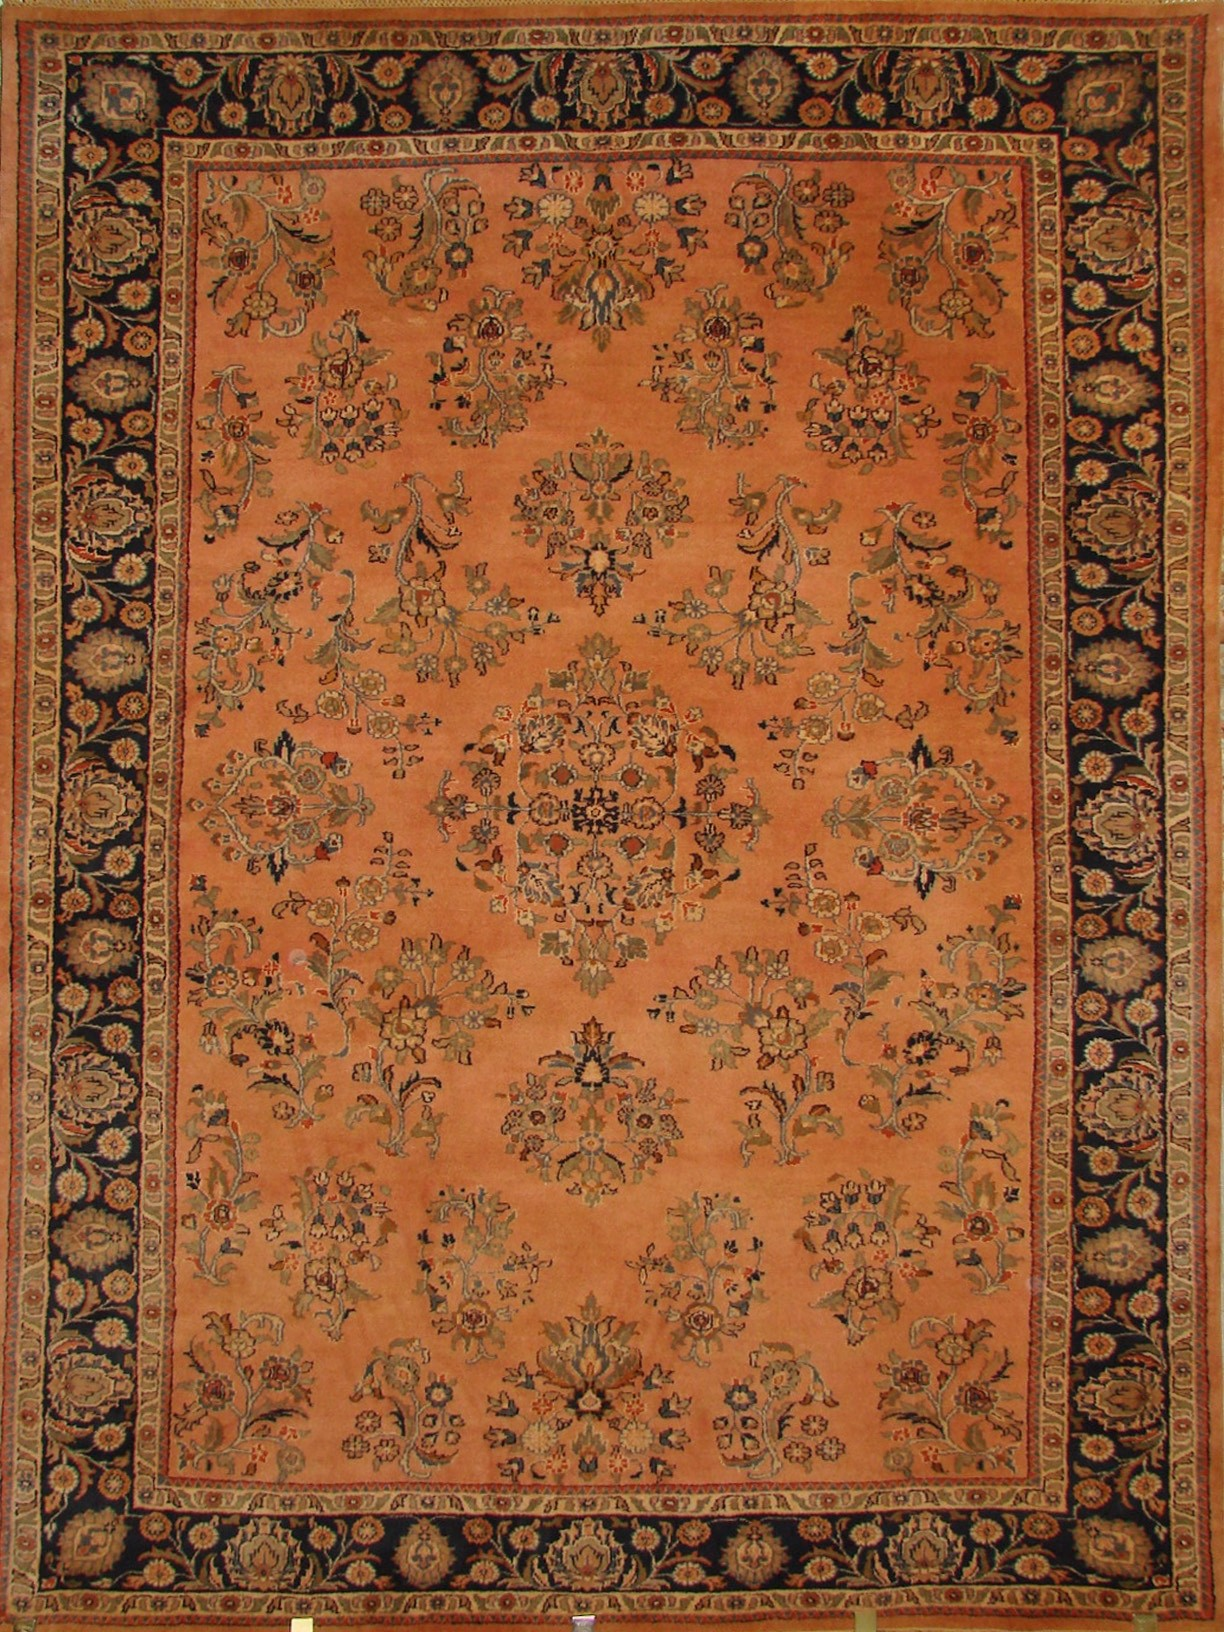 Clearance Rugs & Discontinued Rugs-SAROOK-Oriental Designer Rugs